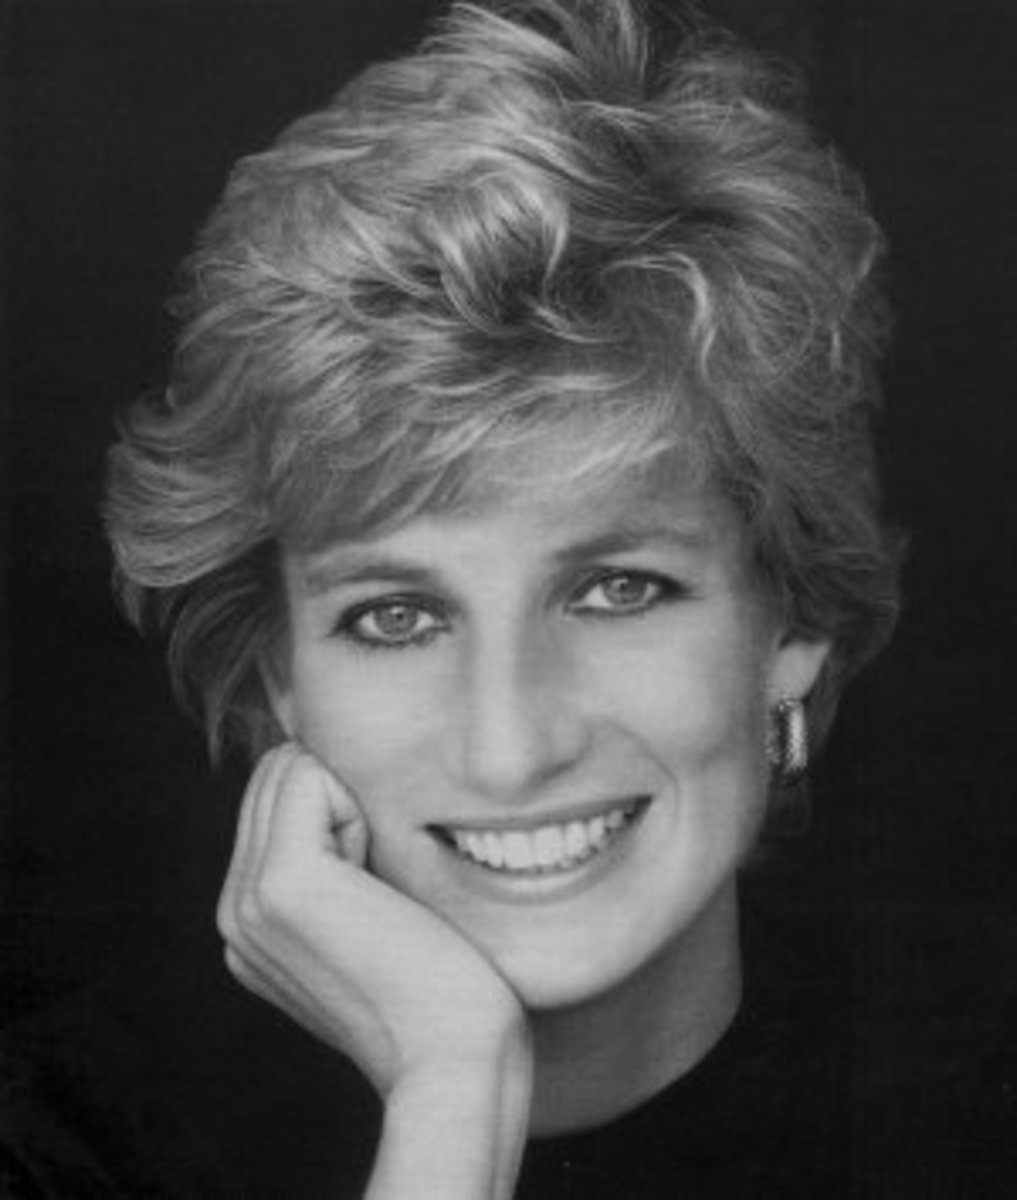 Princess Diana - A Pictorial History